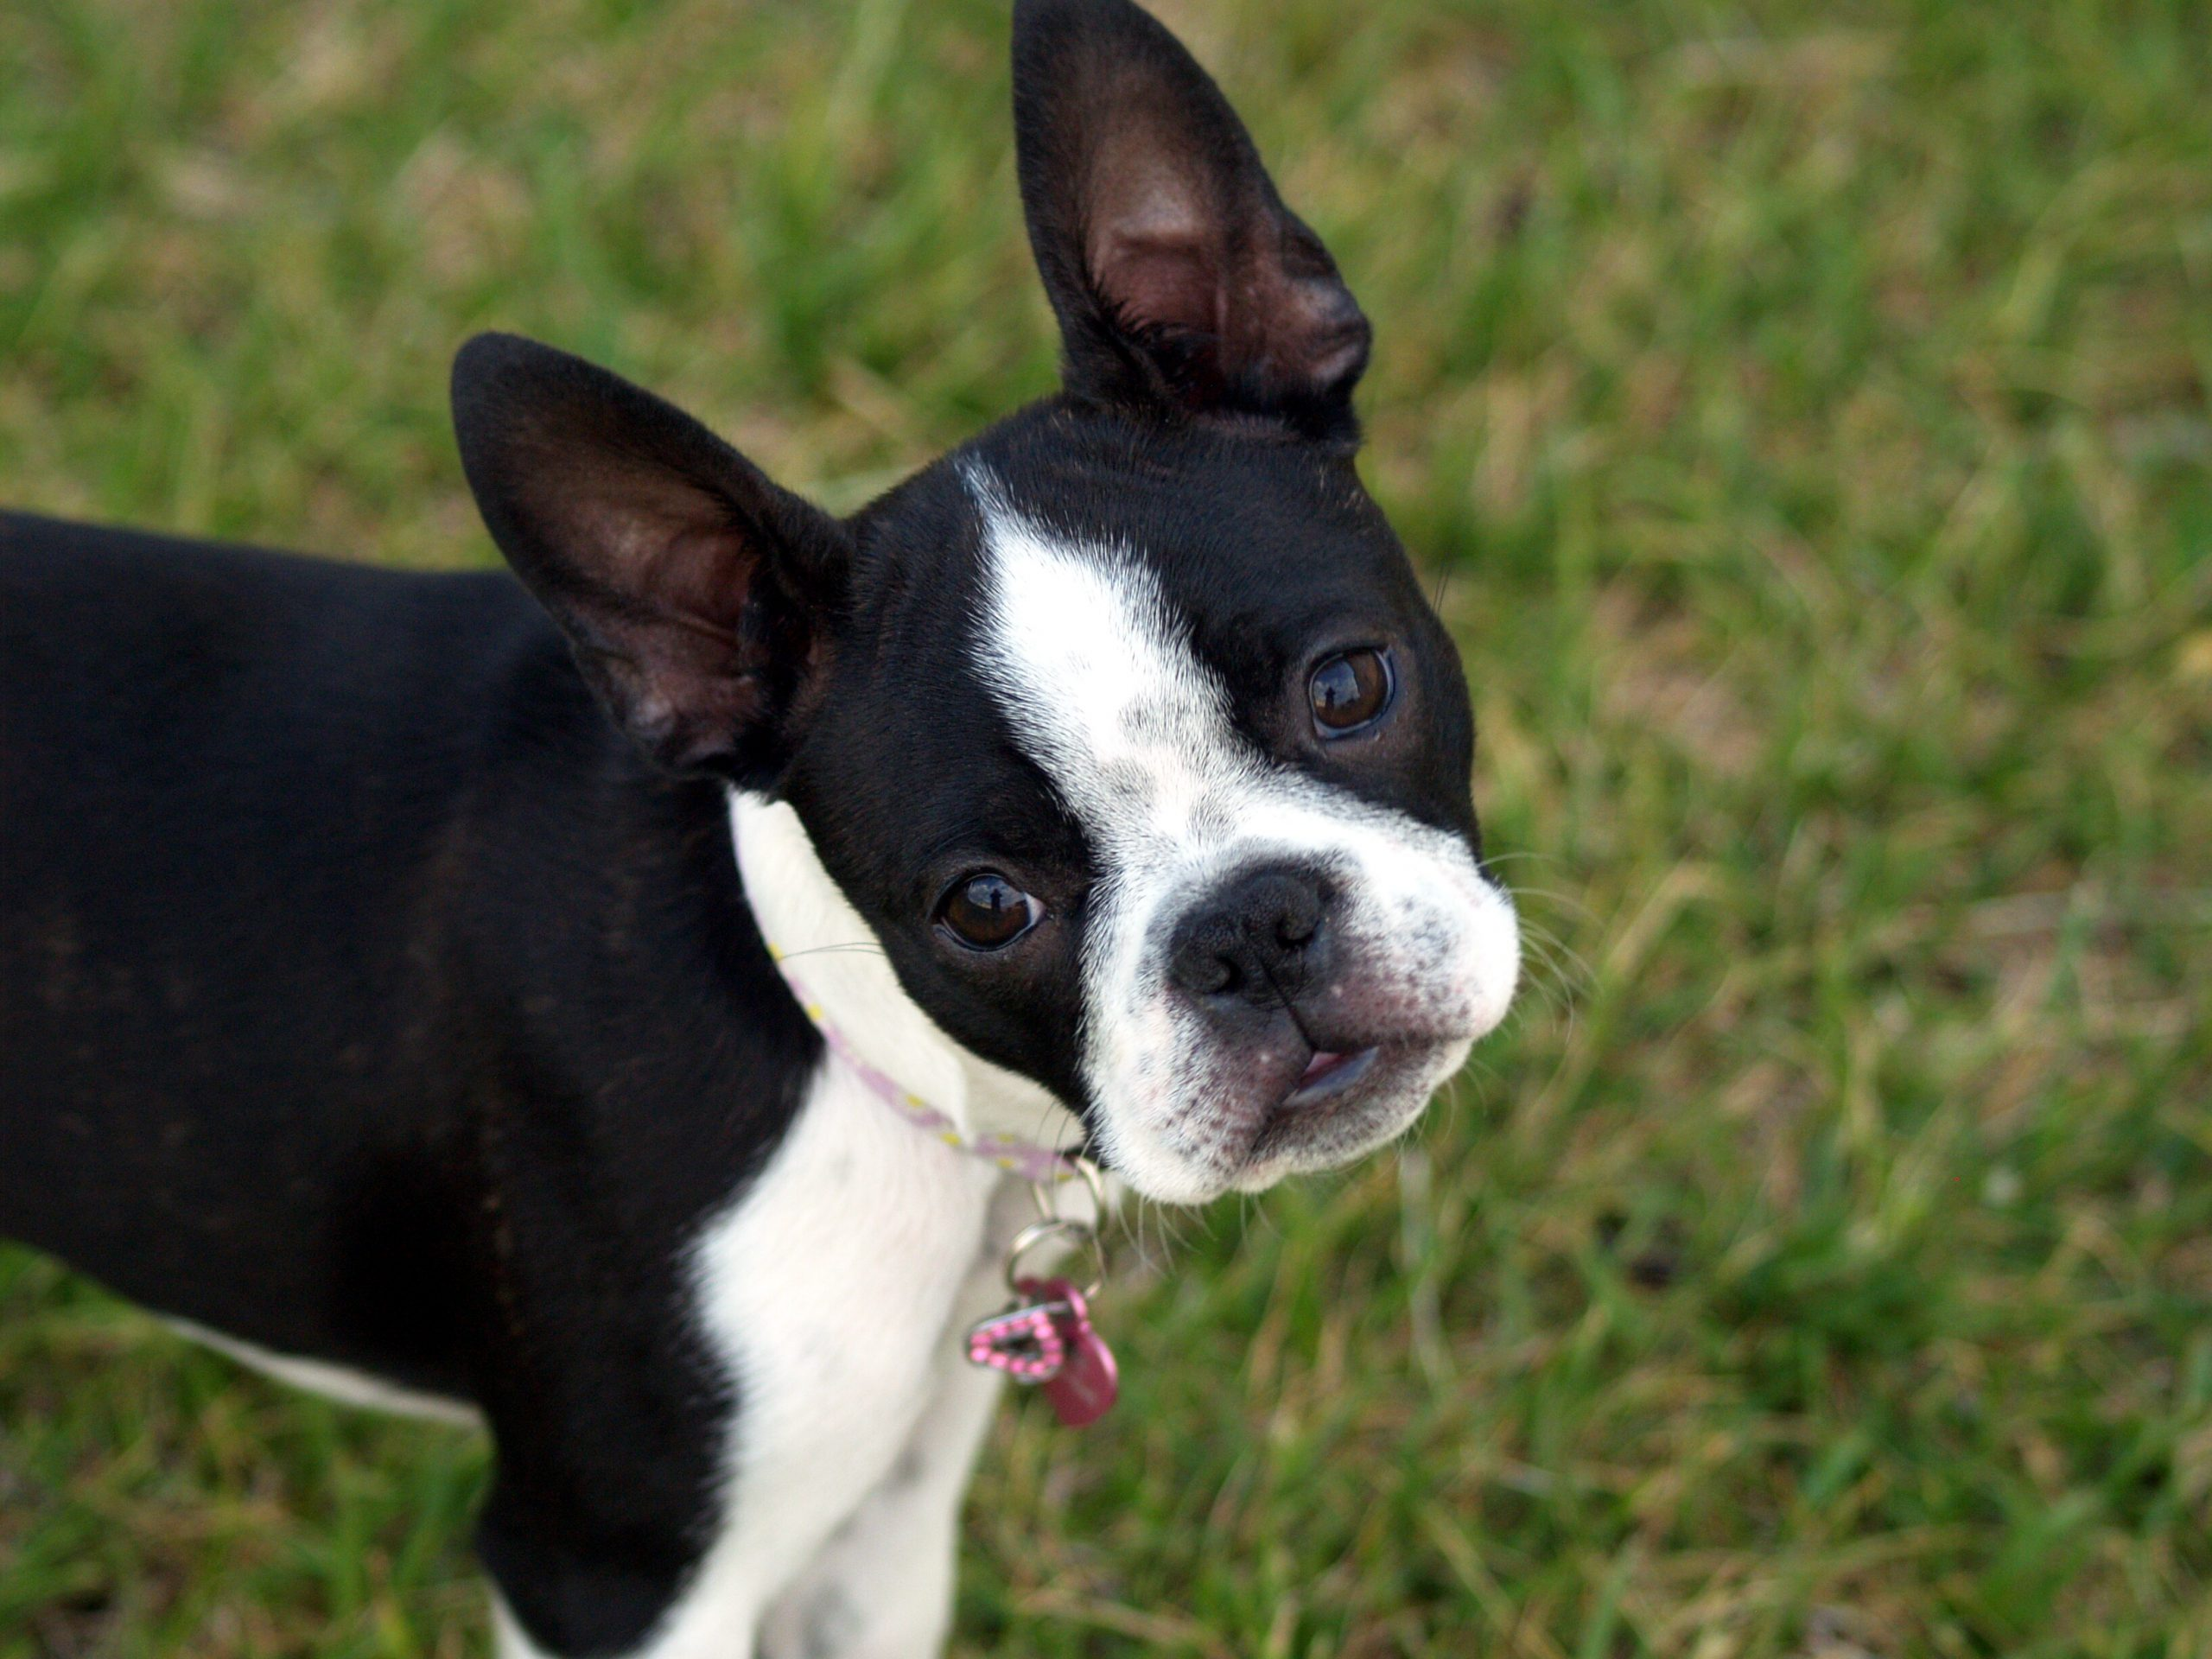 Difference between Boston Terriers & Pugs